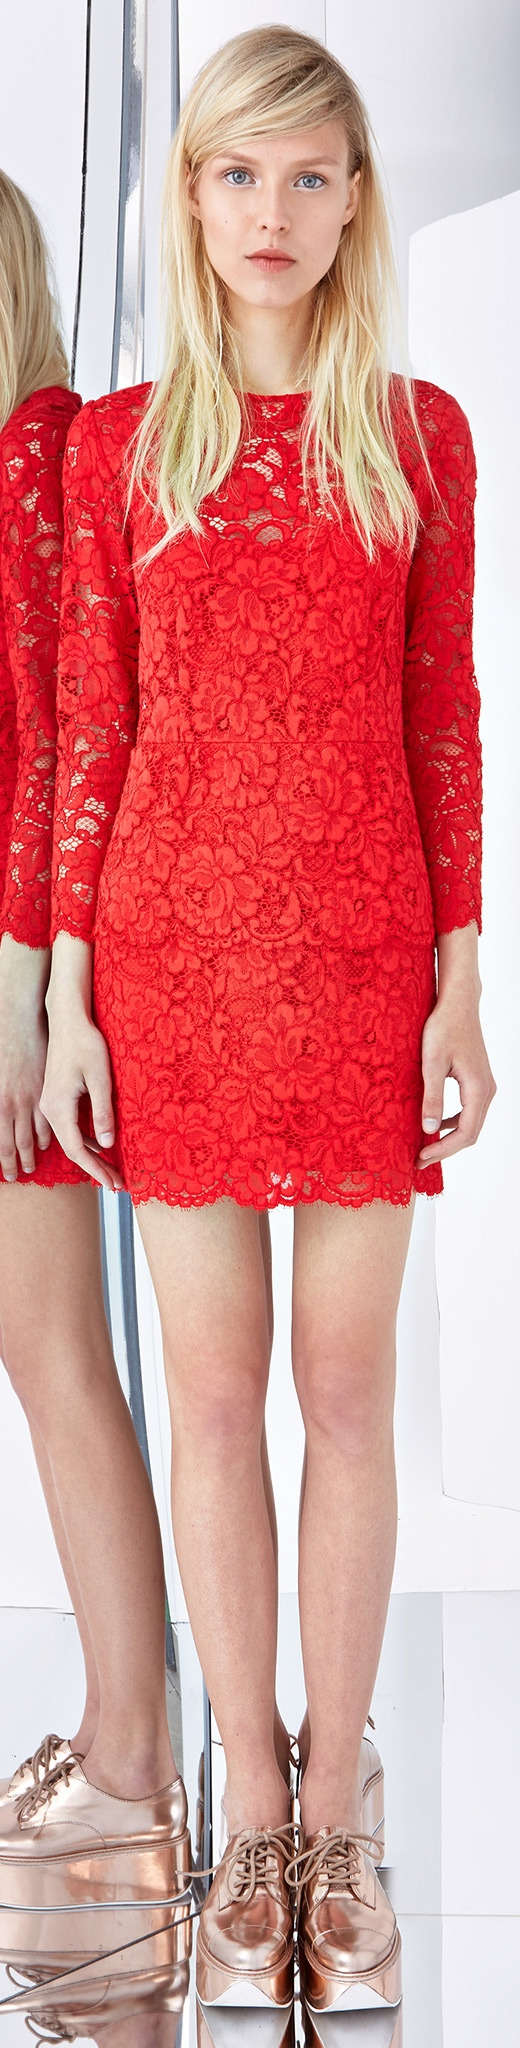 DKNY Resort 2015 Collection